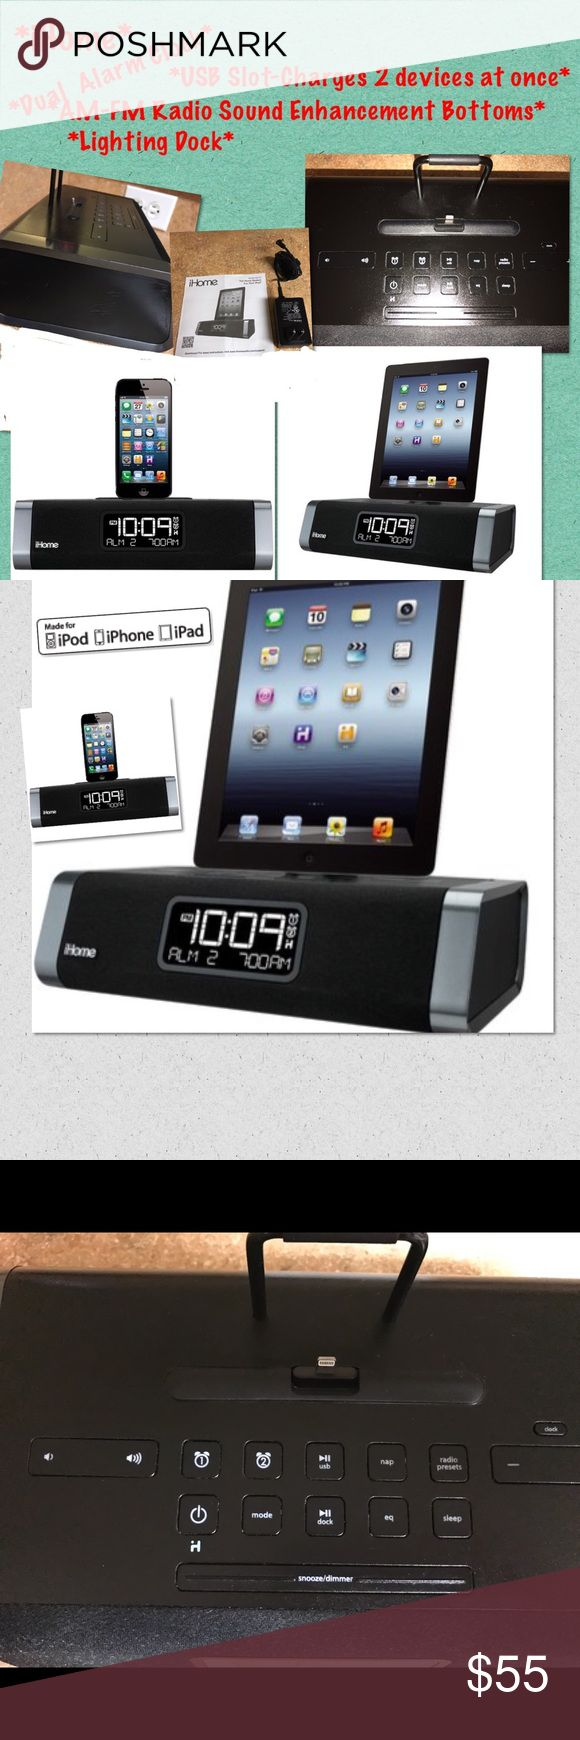 IHome Dual Alarm Clock-Lightening & USB Player iHome iDL45 lightning dock is a dual alarm clock radio(iPad,iPhone iPod)Charge your device wake & sleep to a custom playlist,or radio.Charge & play via flexible Lightning dock(cable not provided).Auto Syncs the clock to your iPhone.iDL45 includes 6 FM presets,EQ controls &3D sound.Reson8 sound technology exceptional.Charge,& play AWARD  WINNING**MINT CONDI.except on 1 side as seen in pic a few minor scratches. Had Apple Remote Holder…